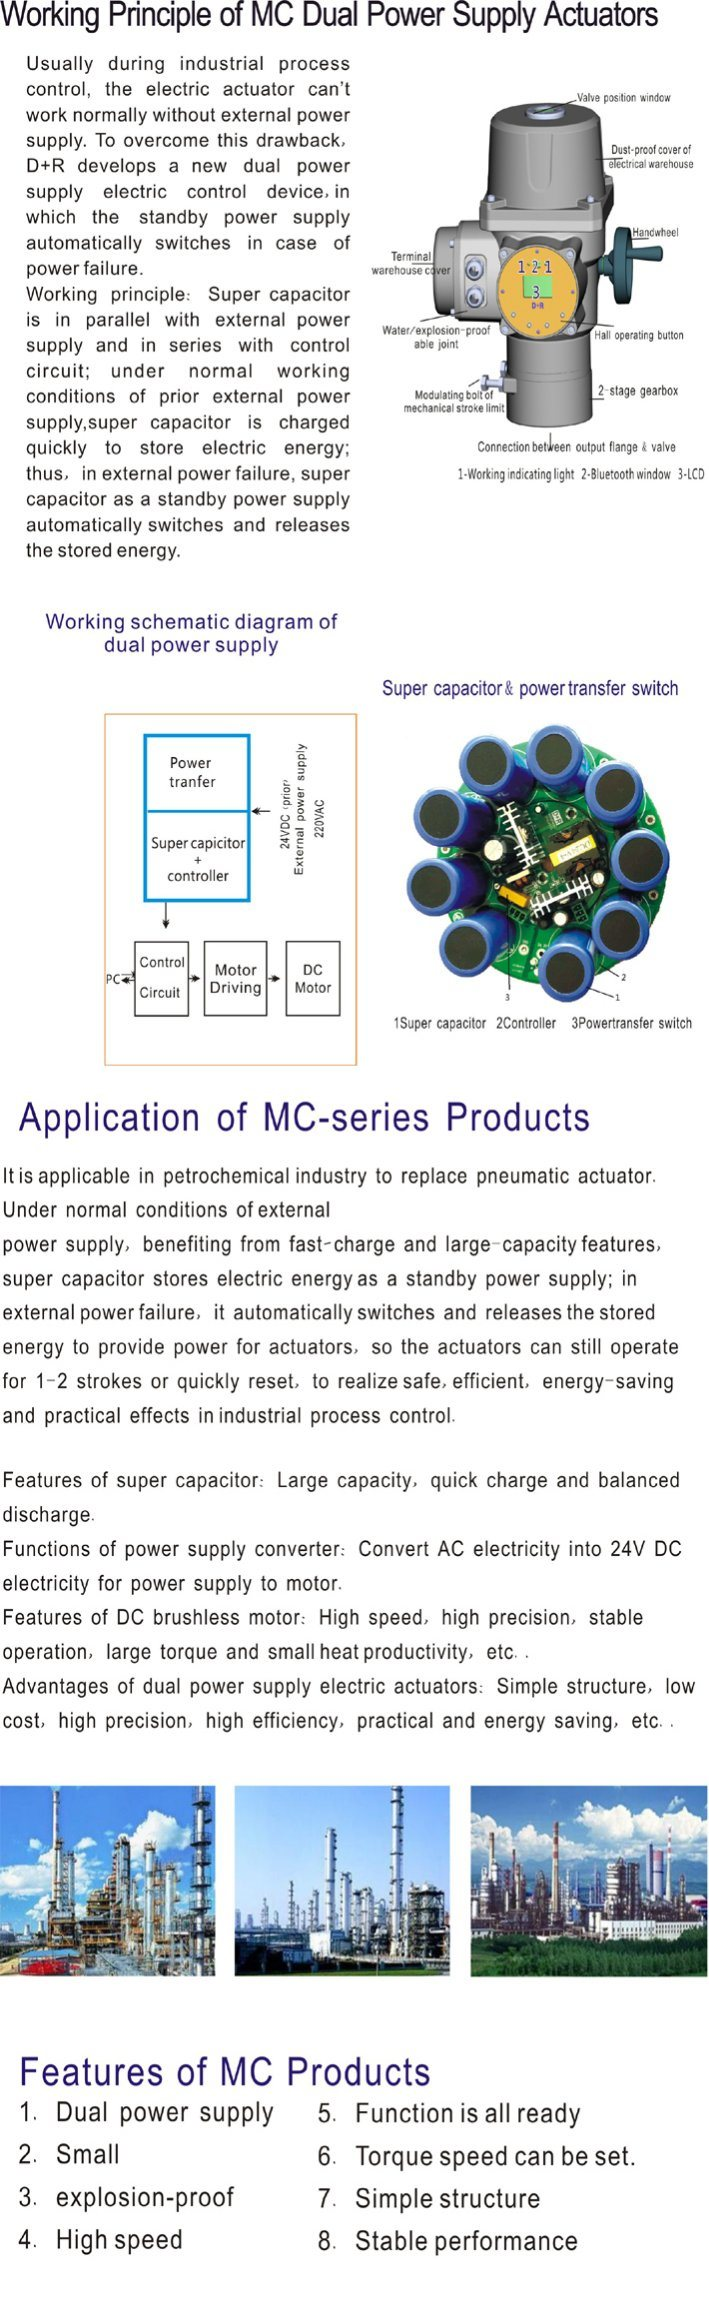 Mc Series Dual Power Supply Instead Of A Pneumatic Valve Electric D R Permanent Magnet Dc Brushless Speed Regulating Eelectric Actuator